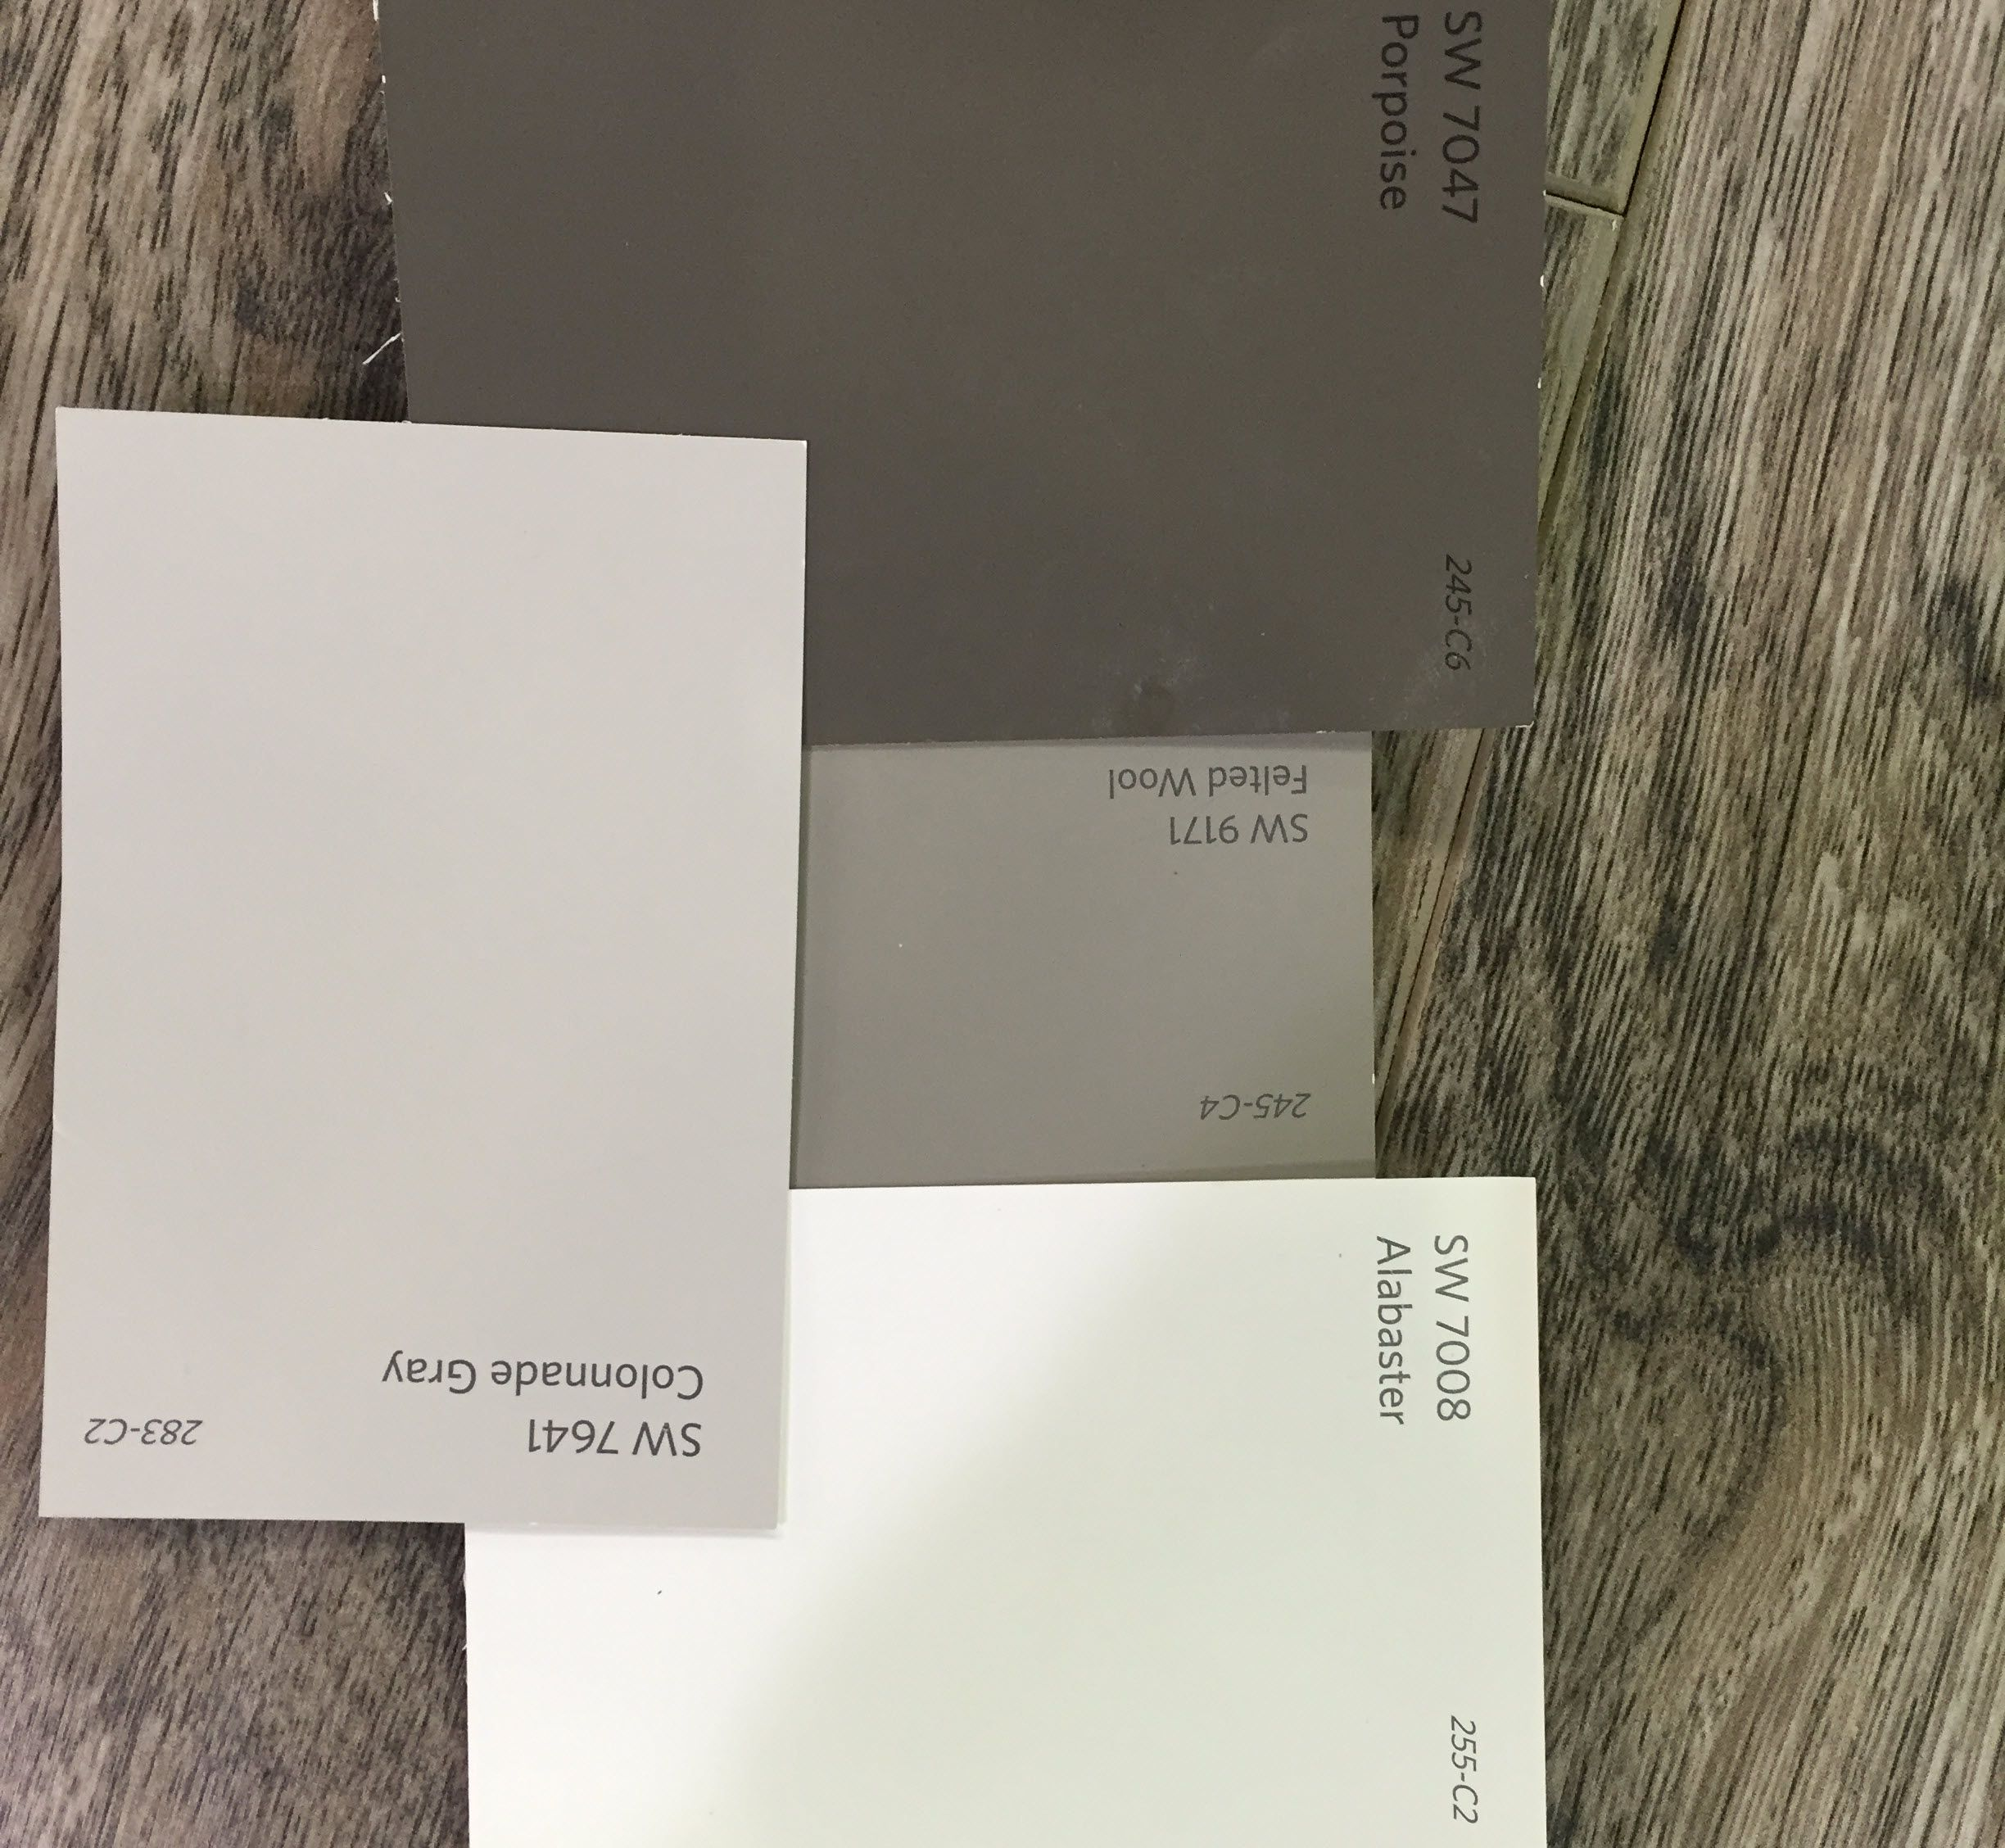 Sherwinwilliams Lower Cabinets Porpoise 7047 Upper Cabinets Felted Wool 9171 Interior Walls Colon Paint Themes Paint Colors For Home Grey Exterior